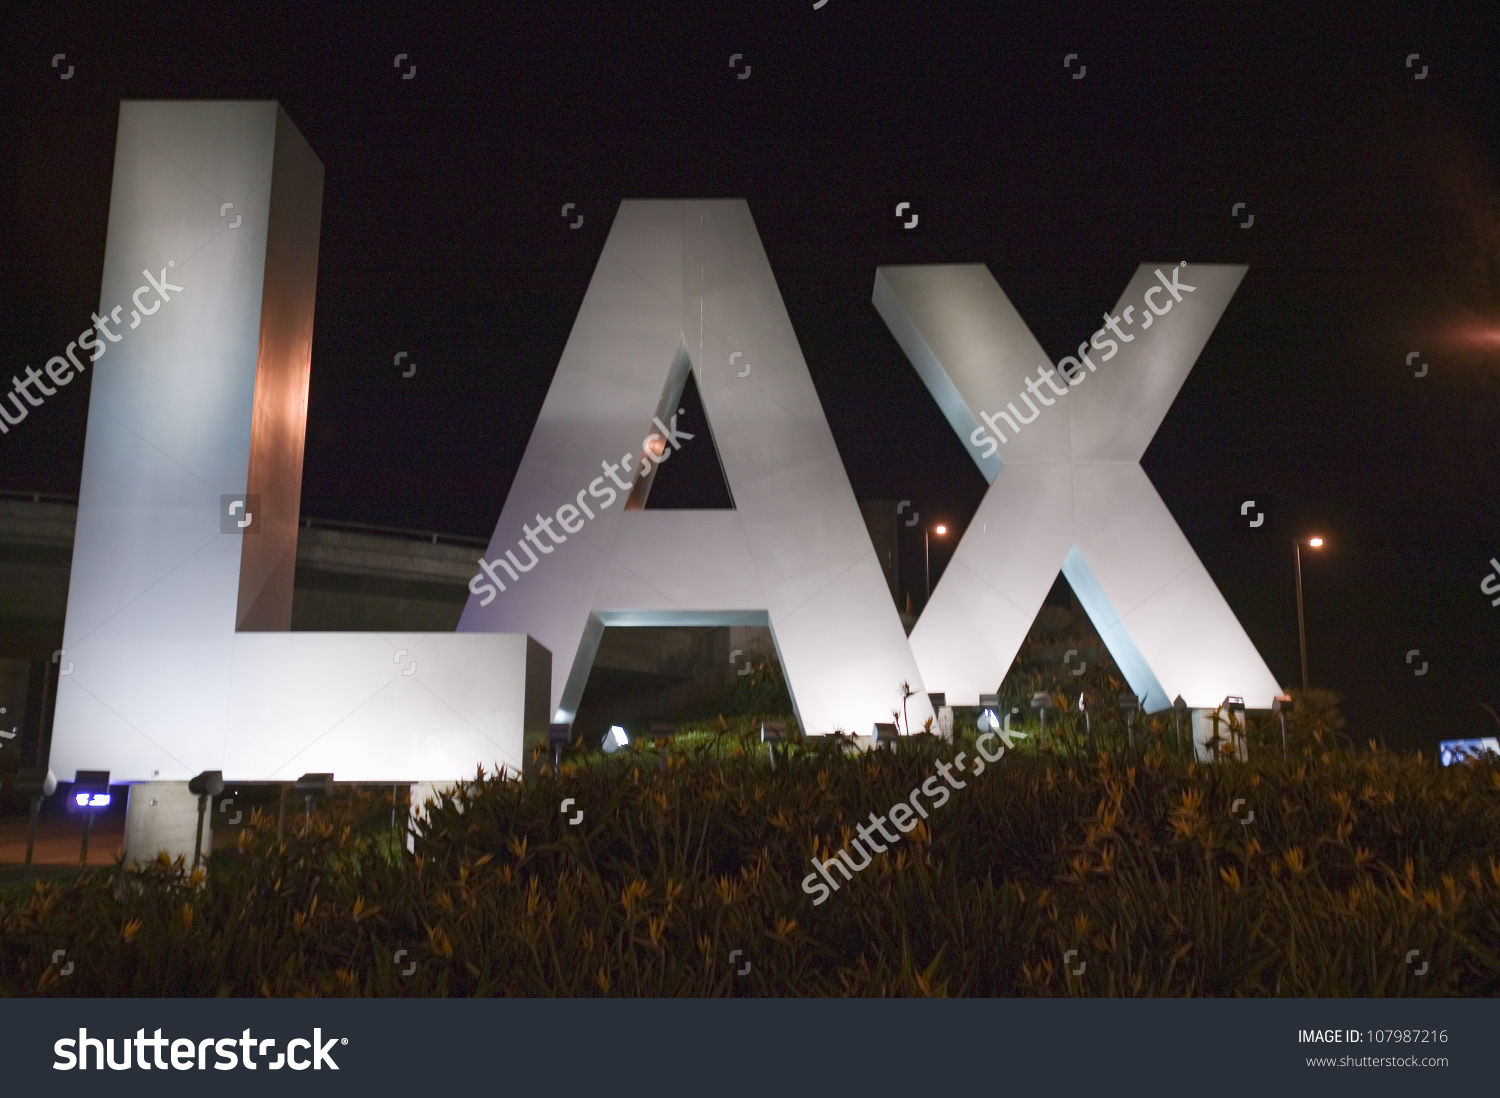 Lax Sign Night Welcoming Travelers Los Stock Photo 107987216.